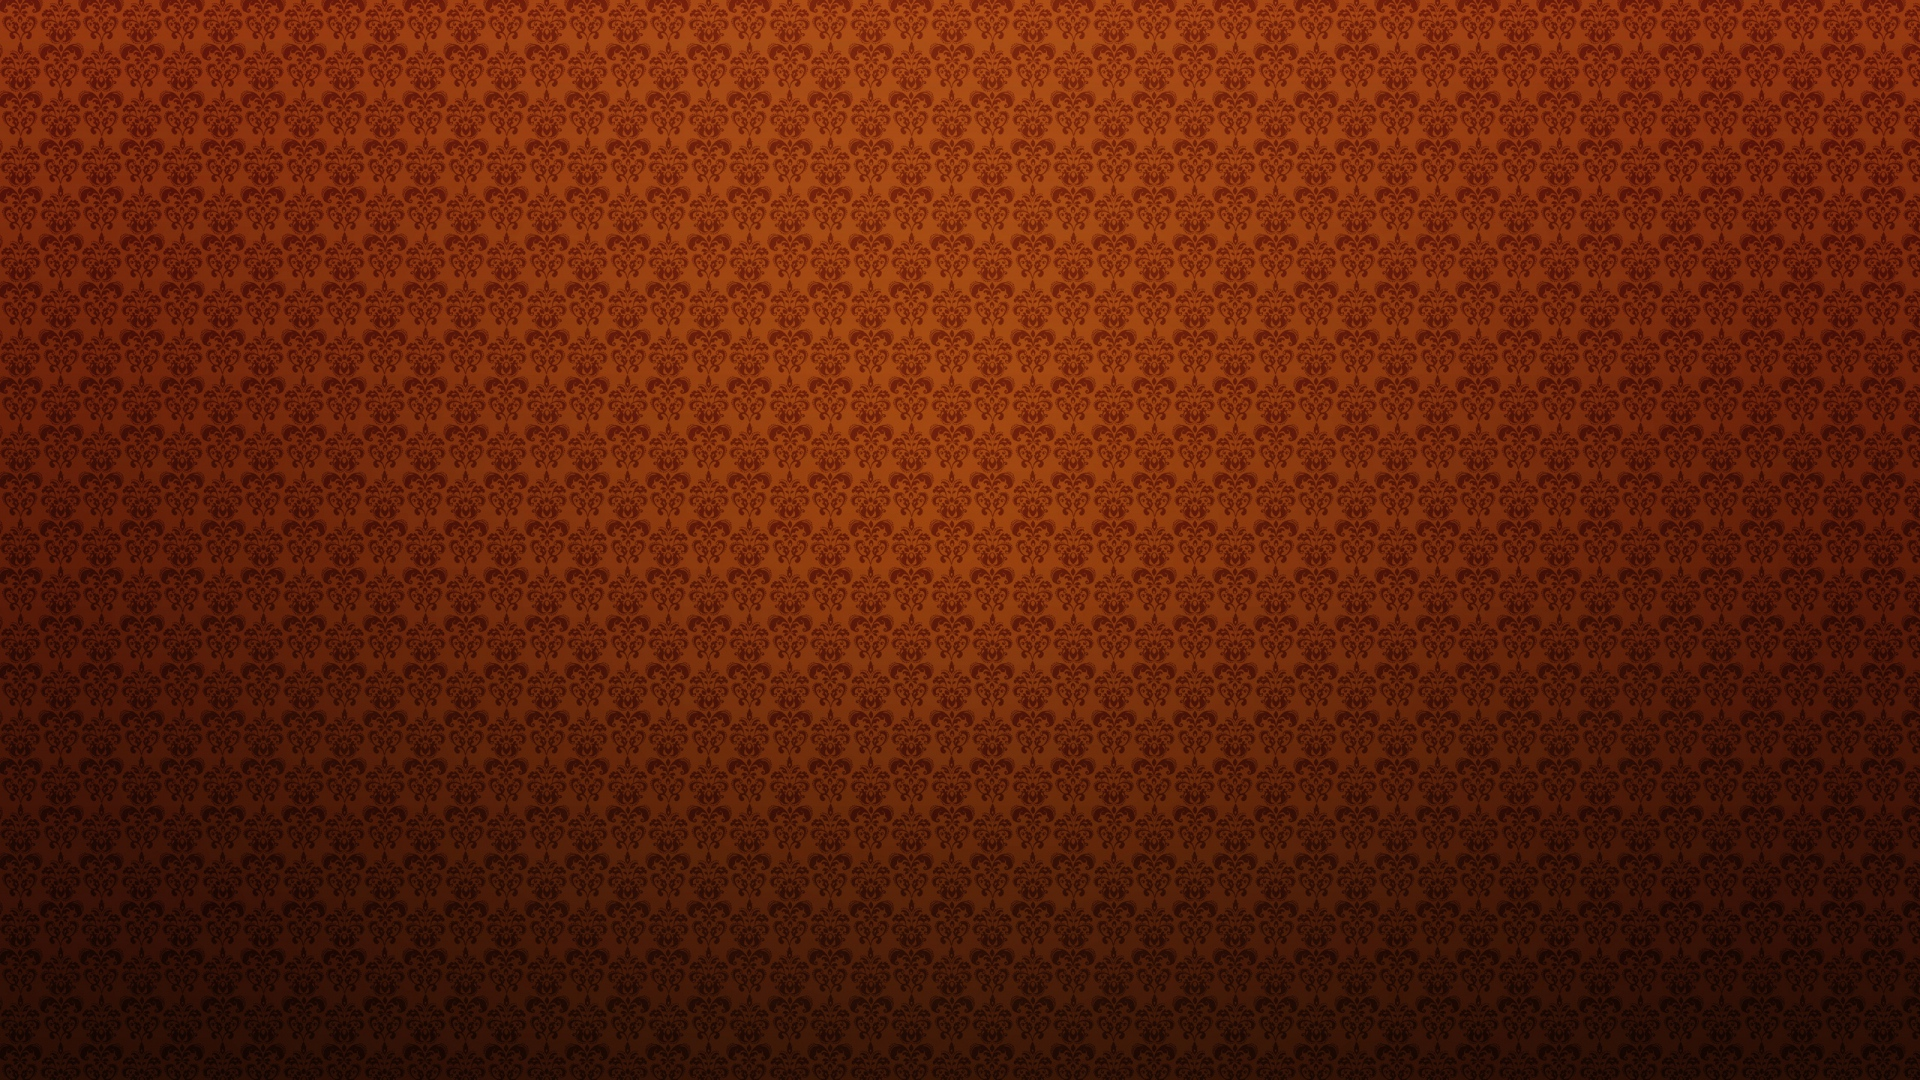 Download Wallpaper 1920x1080 patterns, light, colorful, texture ...